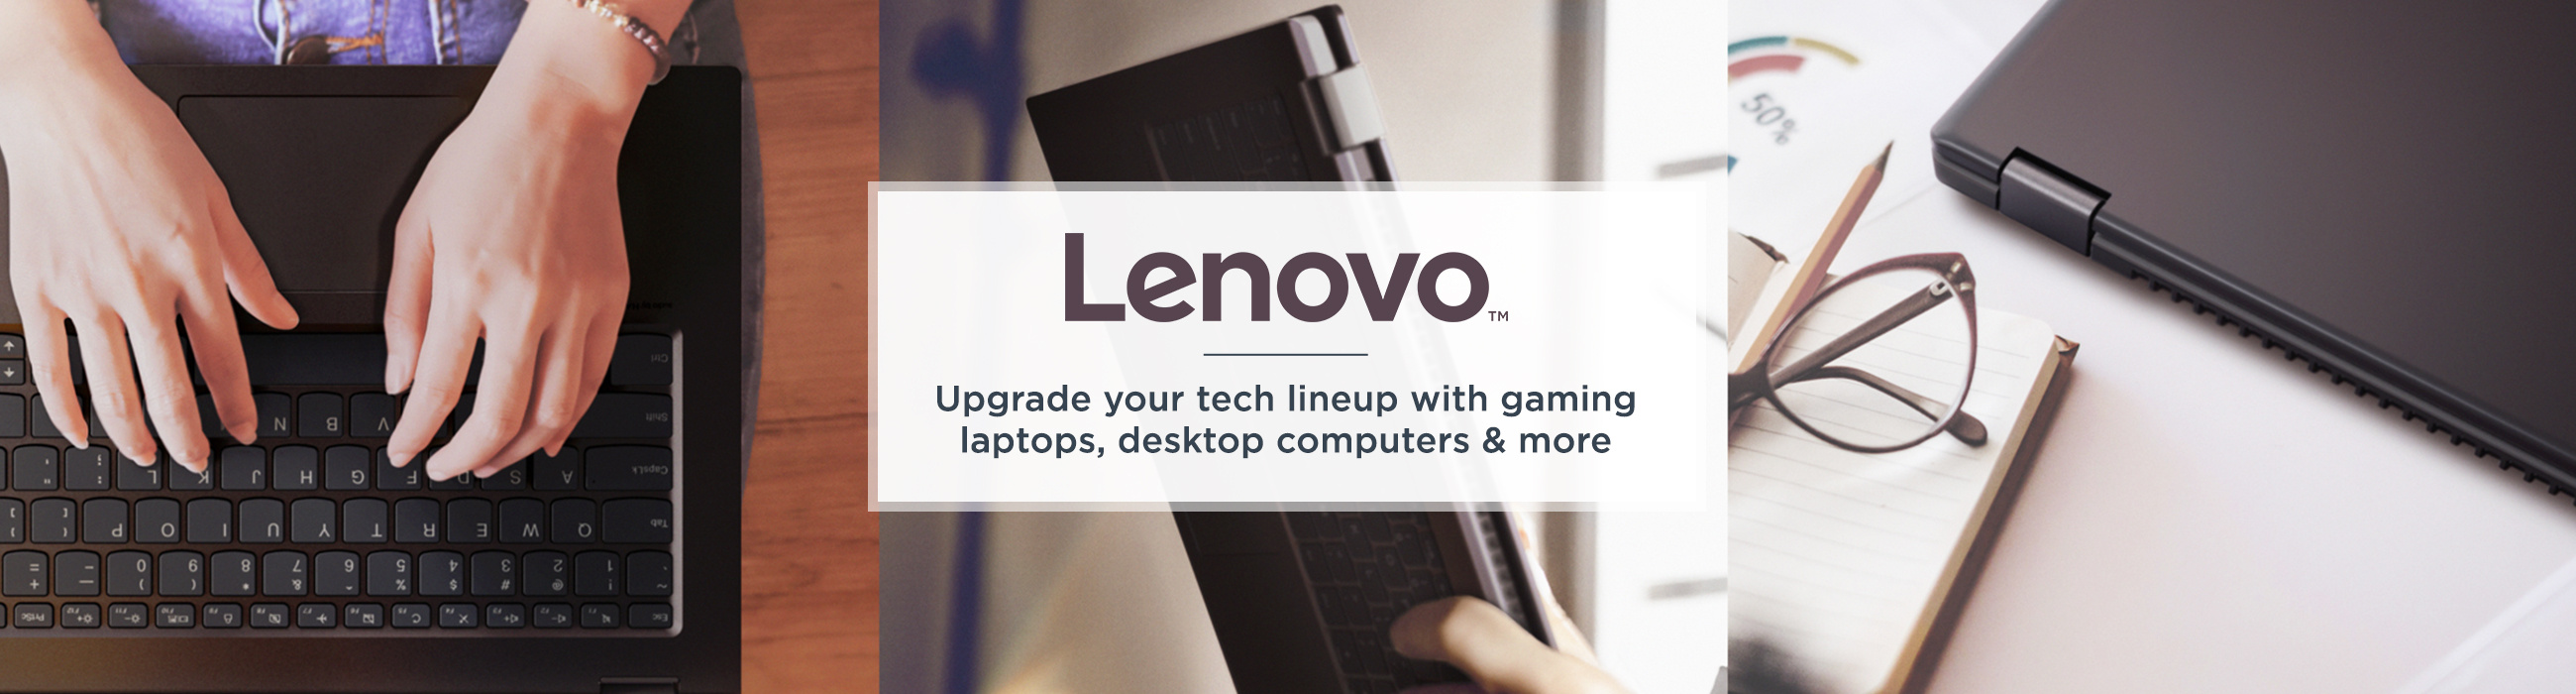 Lenovo. Upgrade your tech lineup with gaming laptops, desktop computers & more